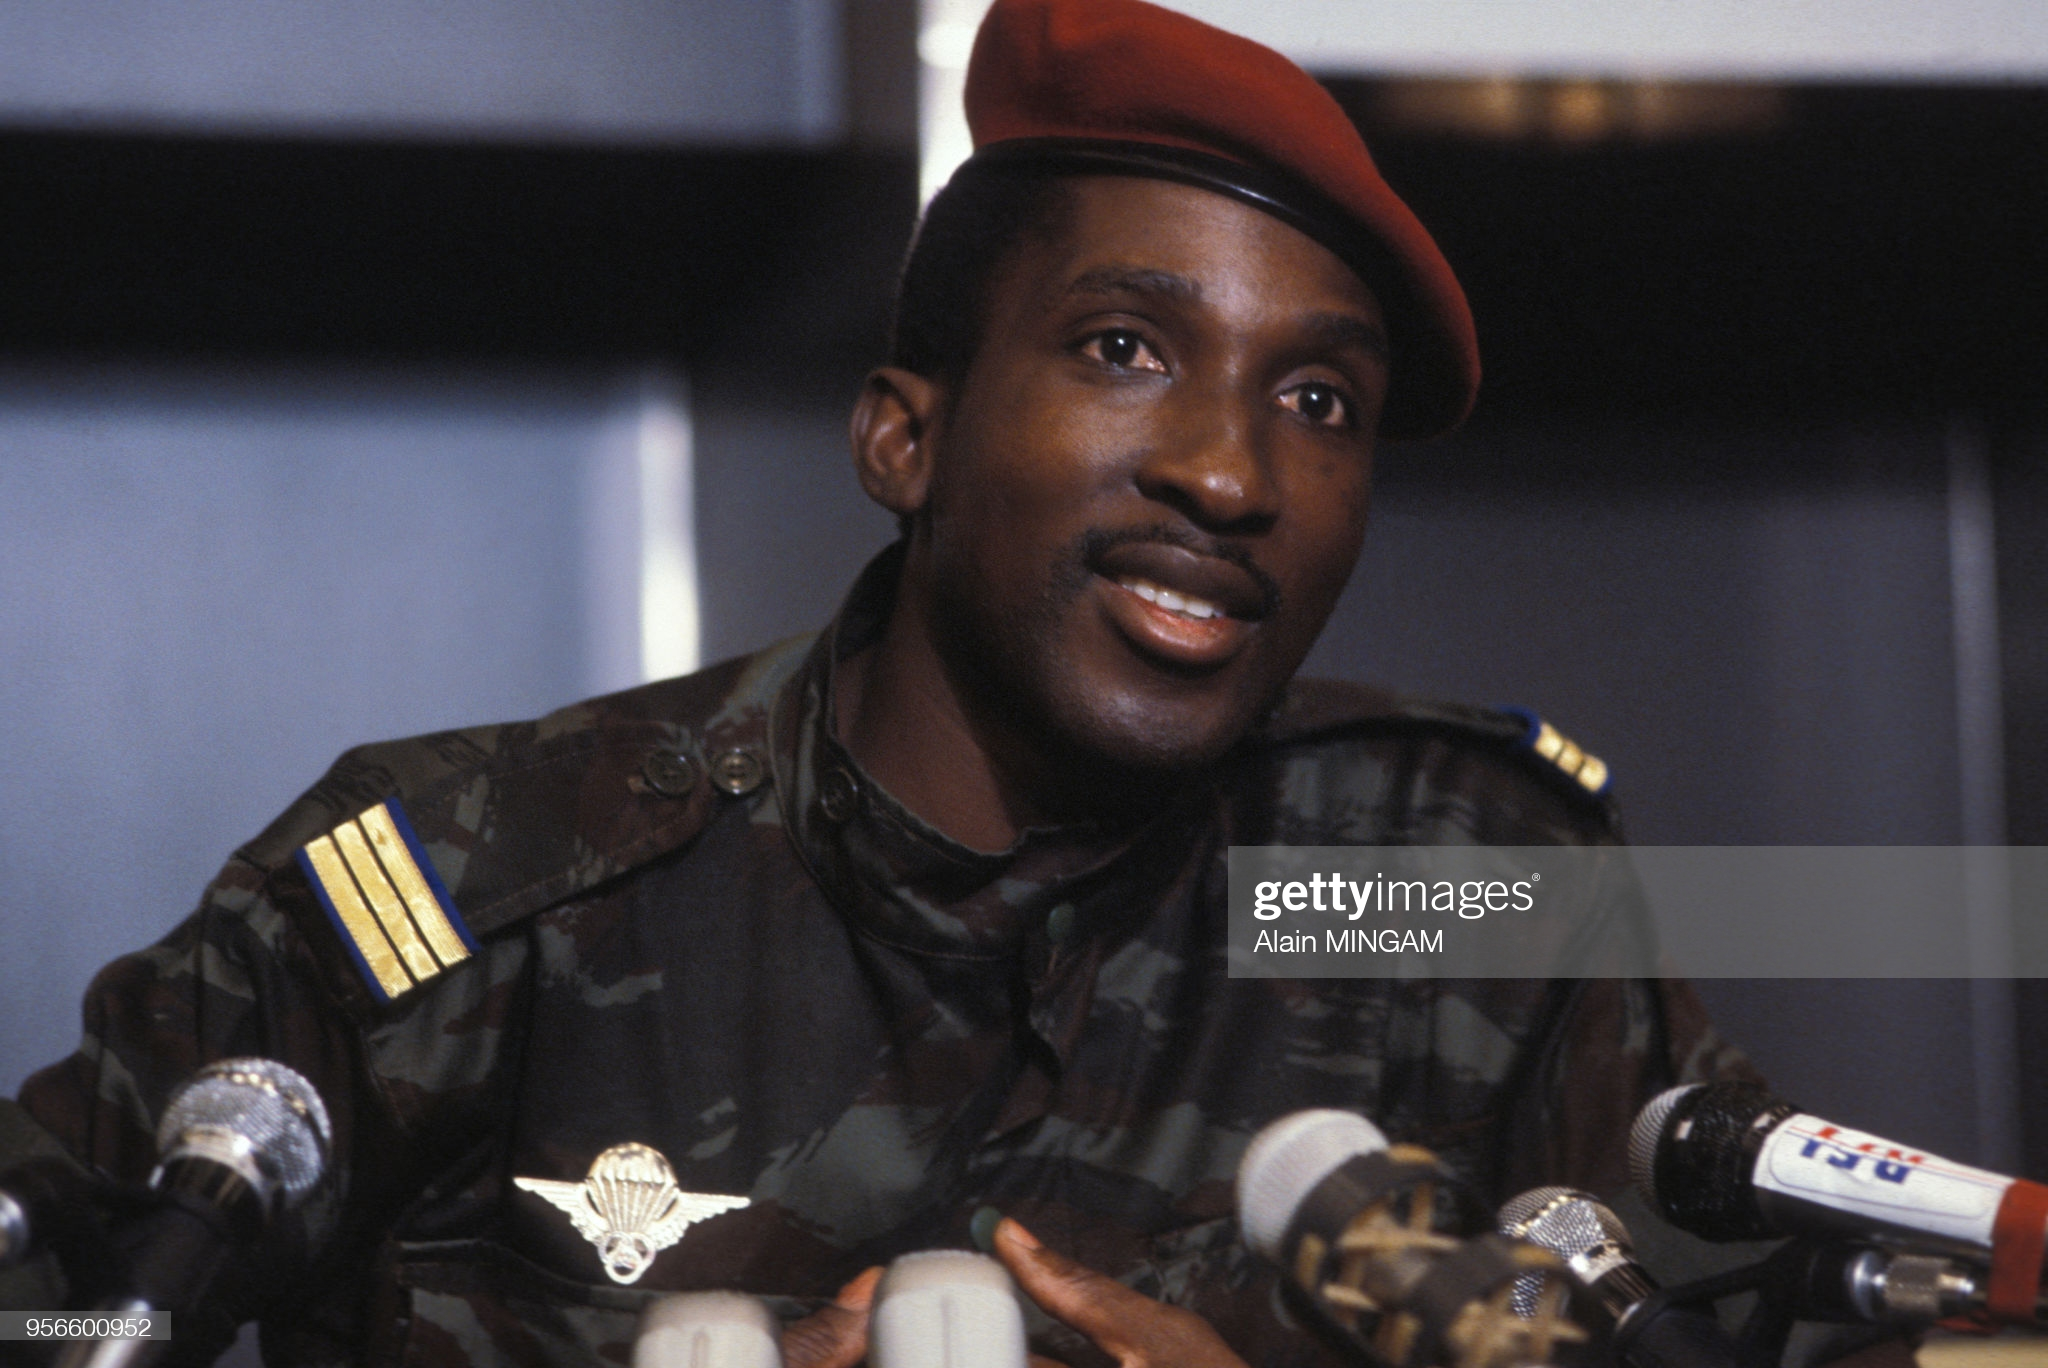 Le président du Burkina Faso Thomas Sankara lors d'un discours le 5 octobre 1983 à Paris, France. (Photo by Alain MINGAM/Gamma-Rapho via Getty Images)